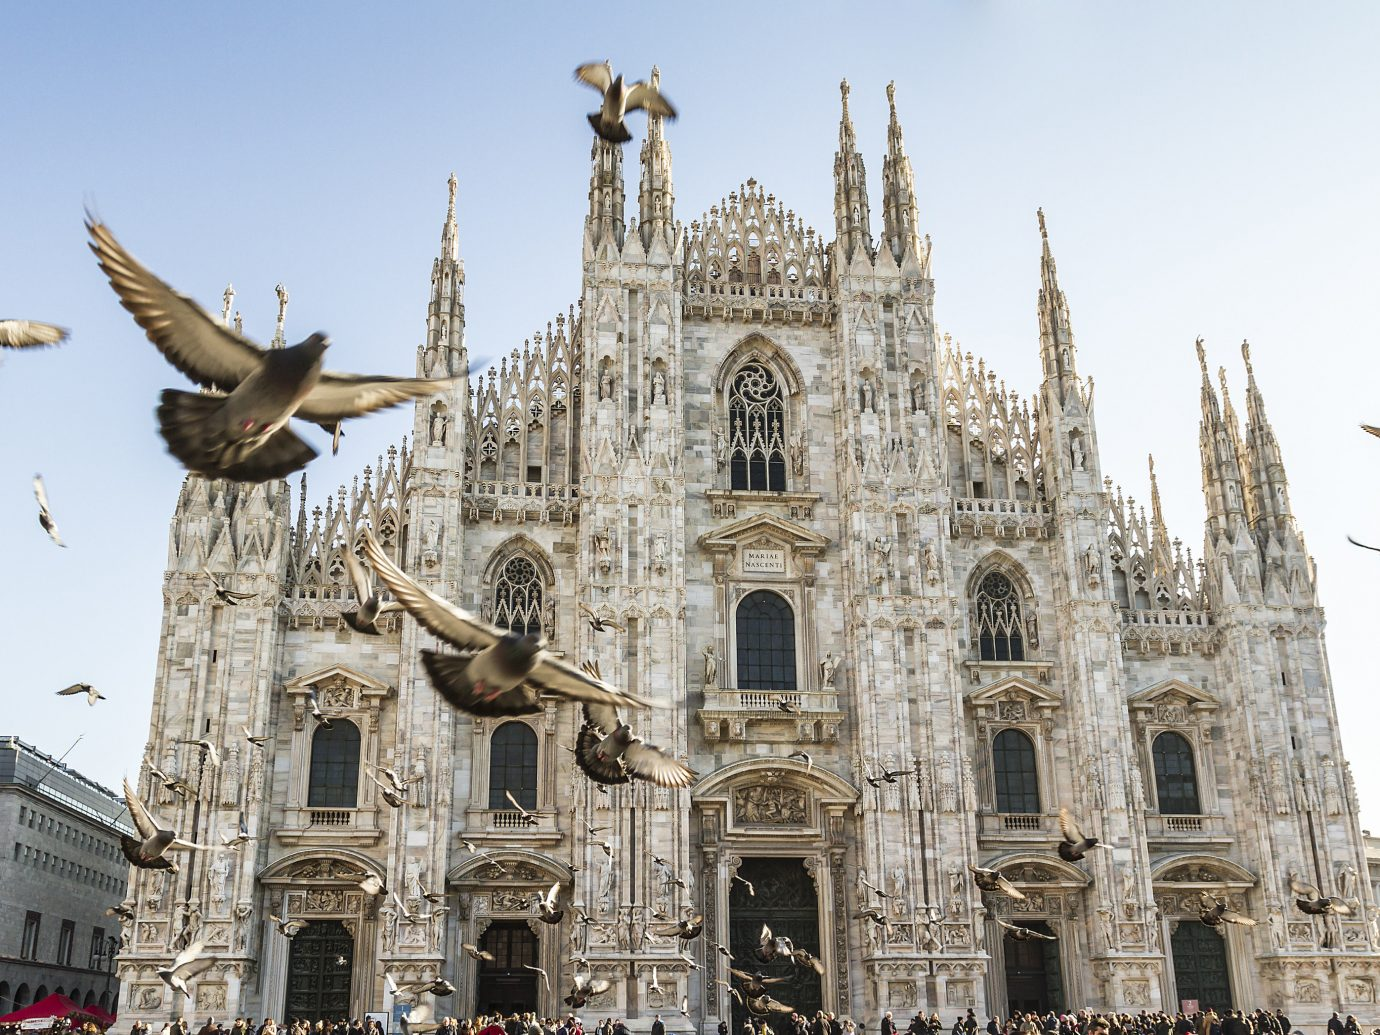 Cruise Travel Luxury Travel Trip Ideas building sky outdoor landmark spire gothic architecture cathedral Architecture Church facade place of worship plaza basilica palace old stone